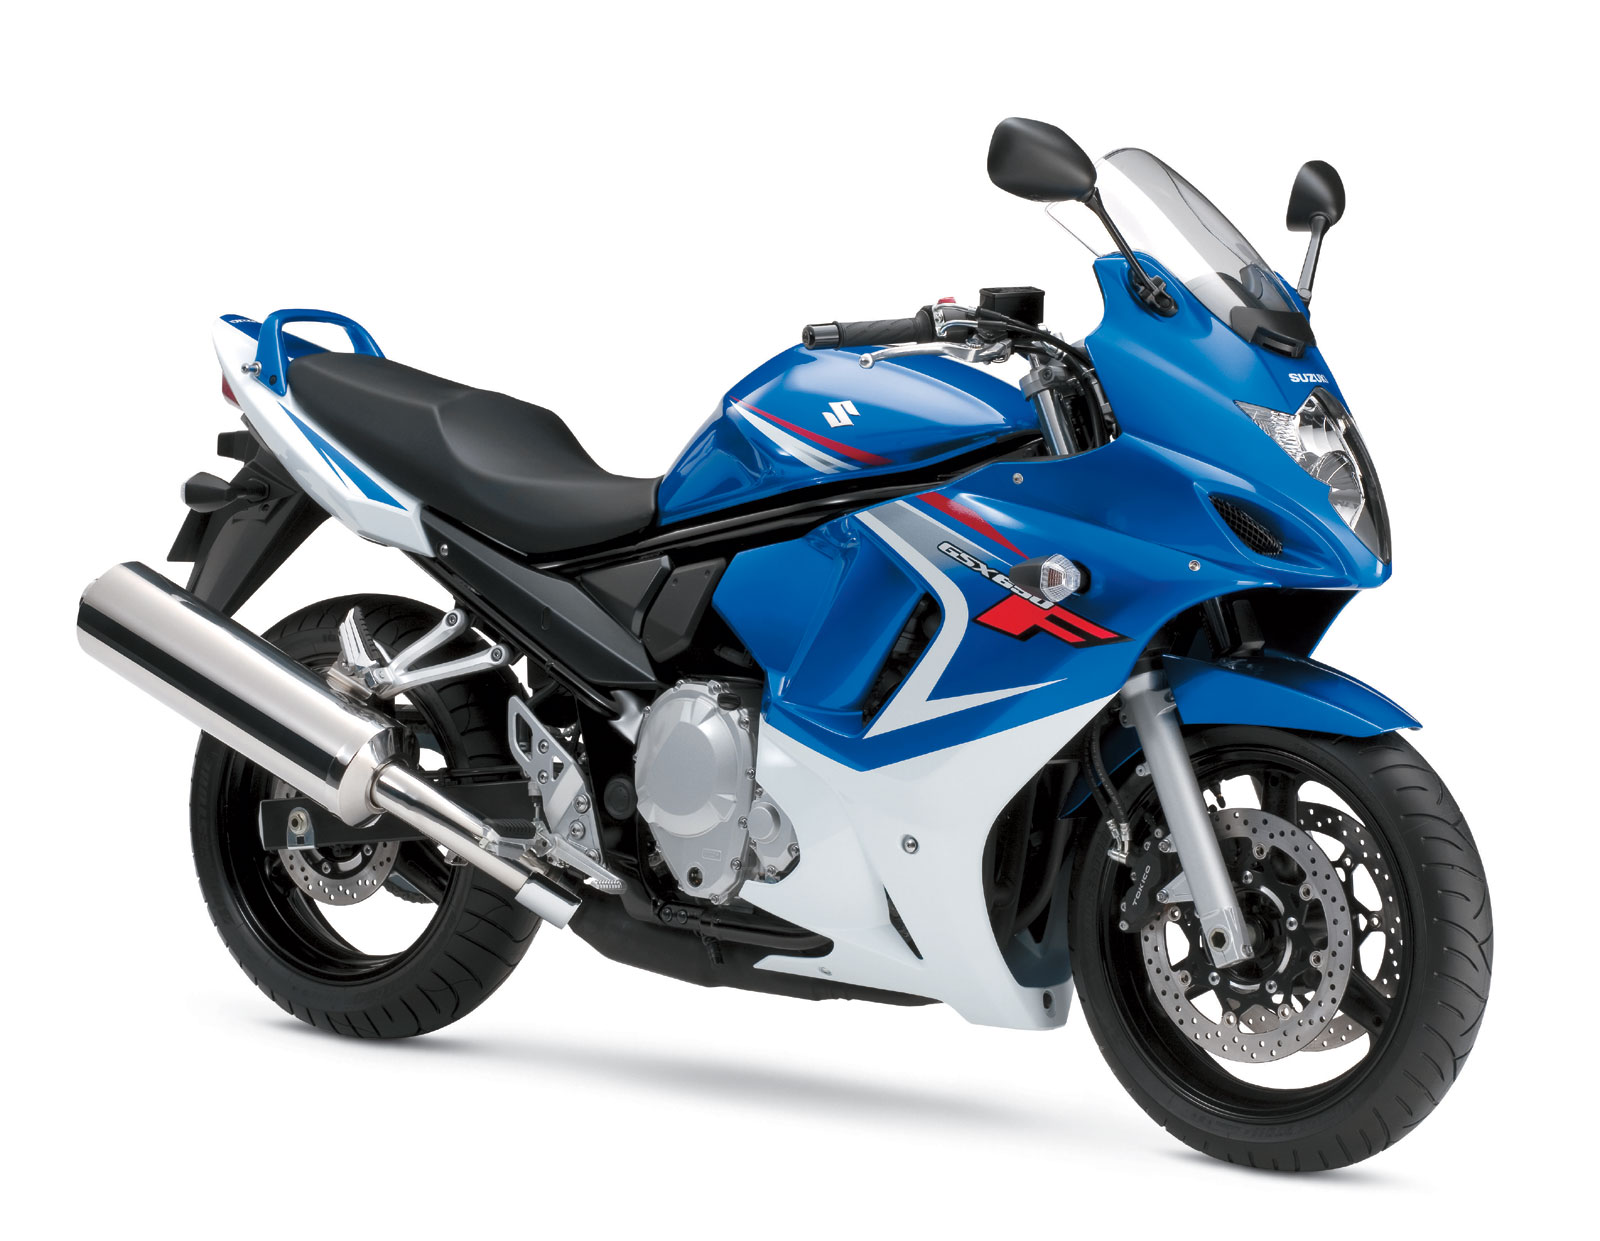 Suzuki gsx-f photo - 9